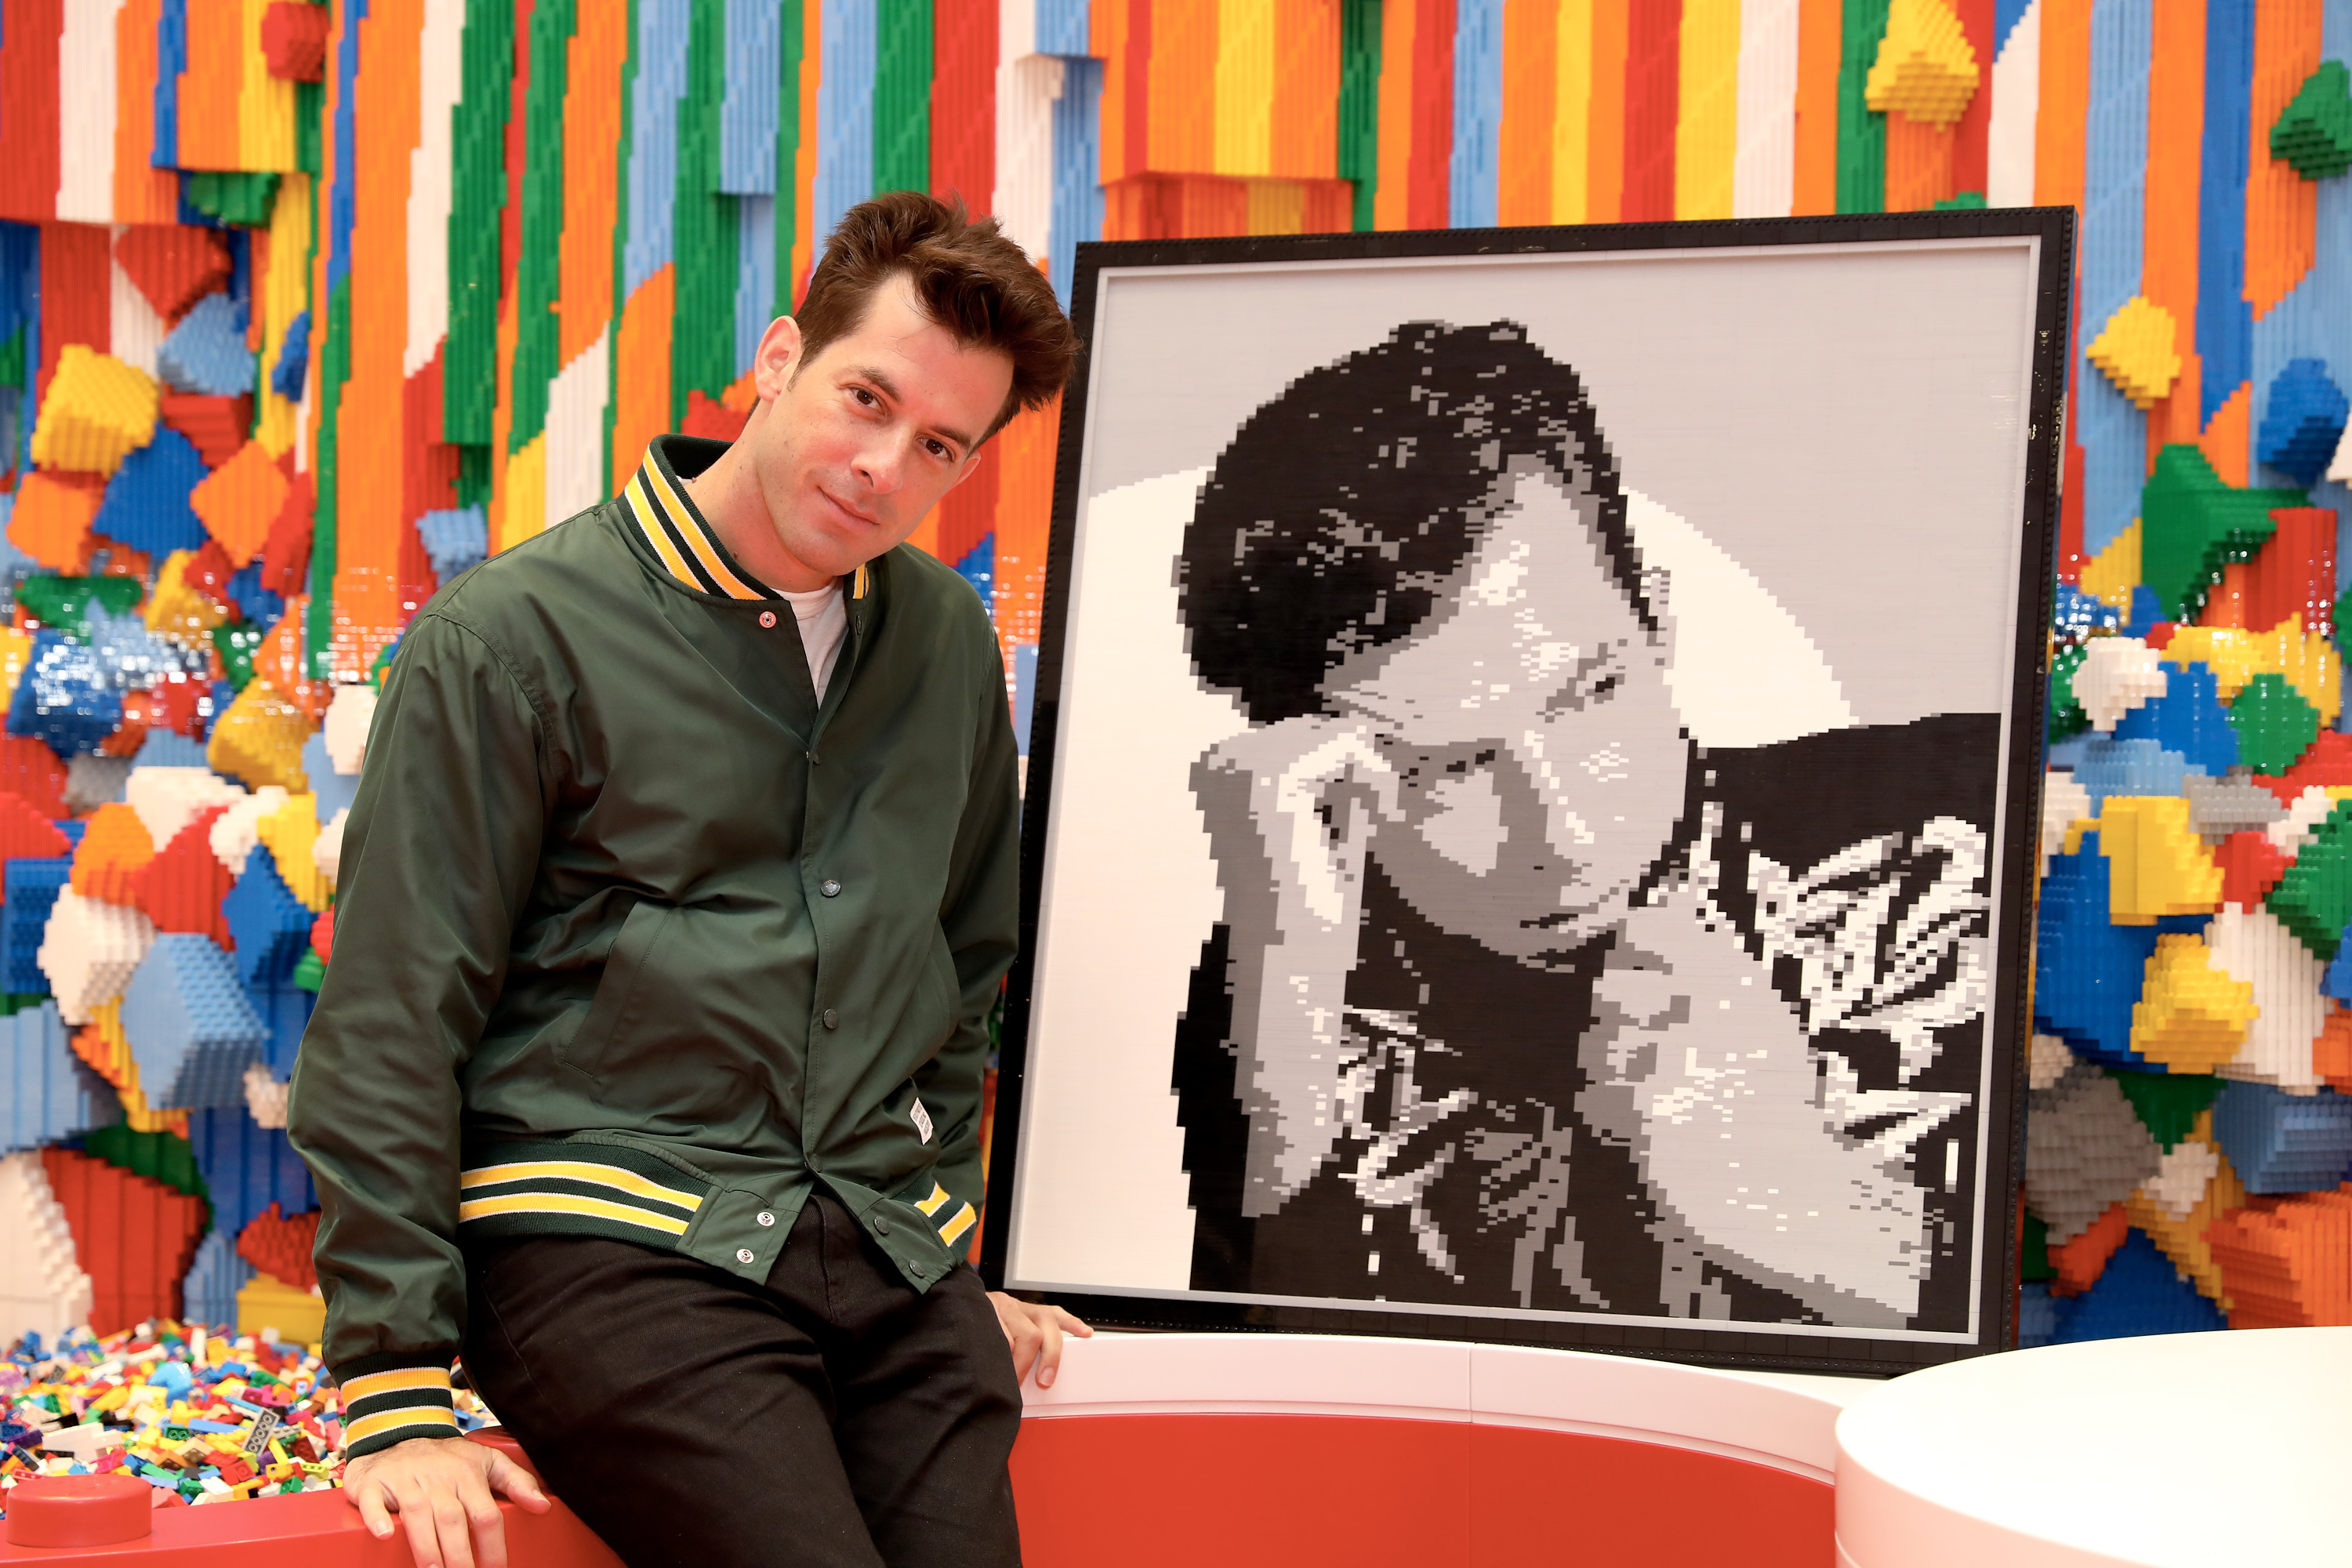 Mark Ronson has came out as sapiosexual. (Tristan Fewings/Getty Images for The LEGO Group)